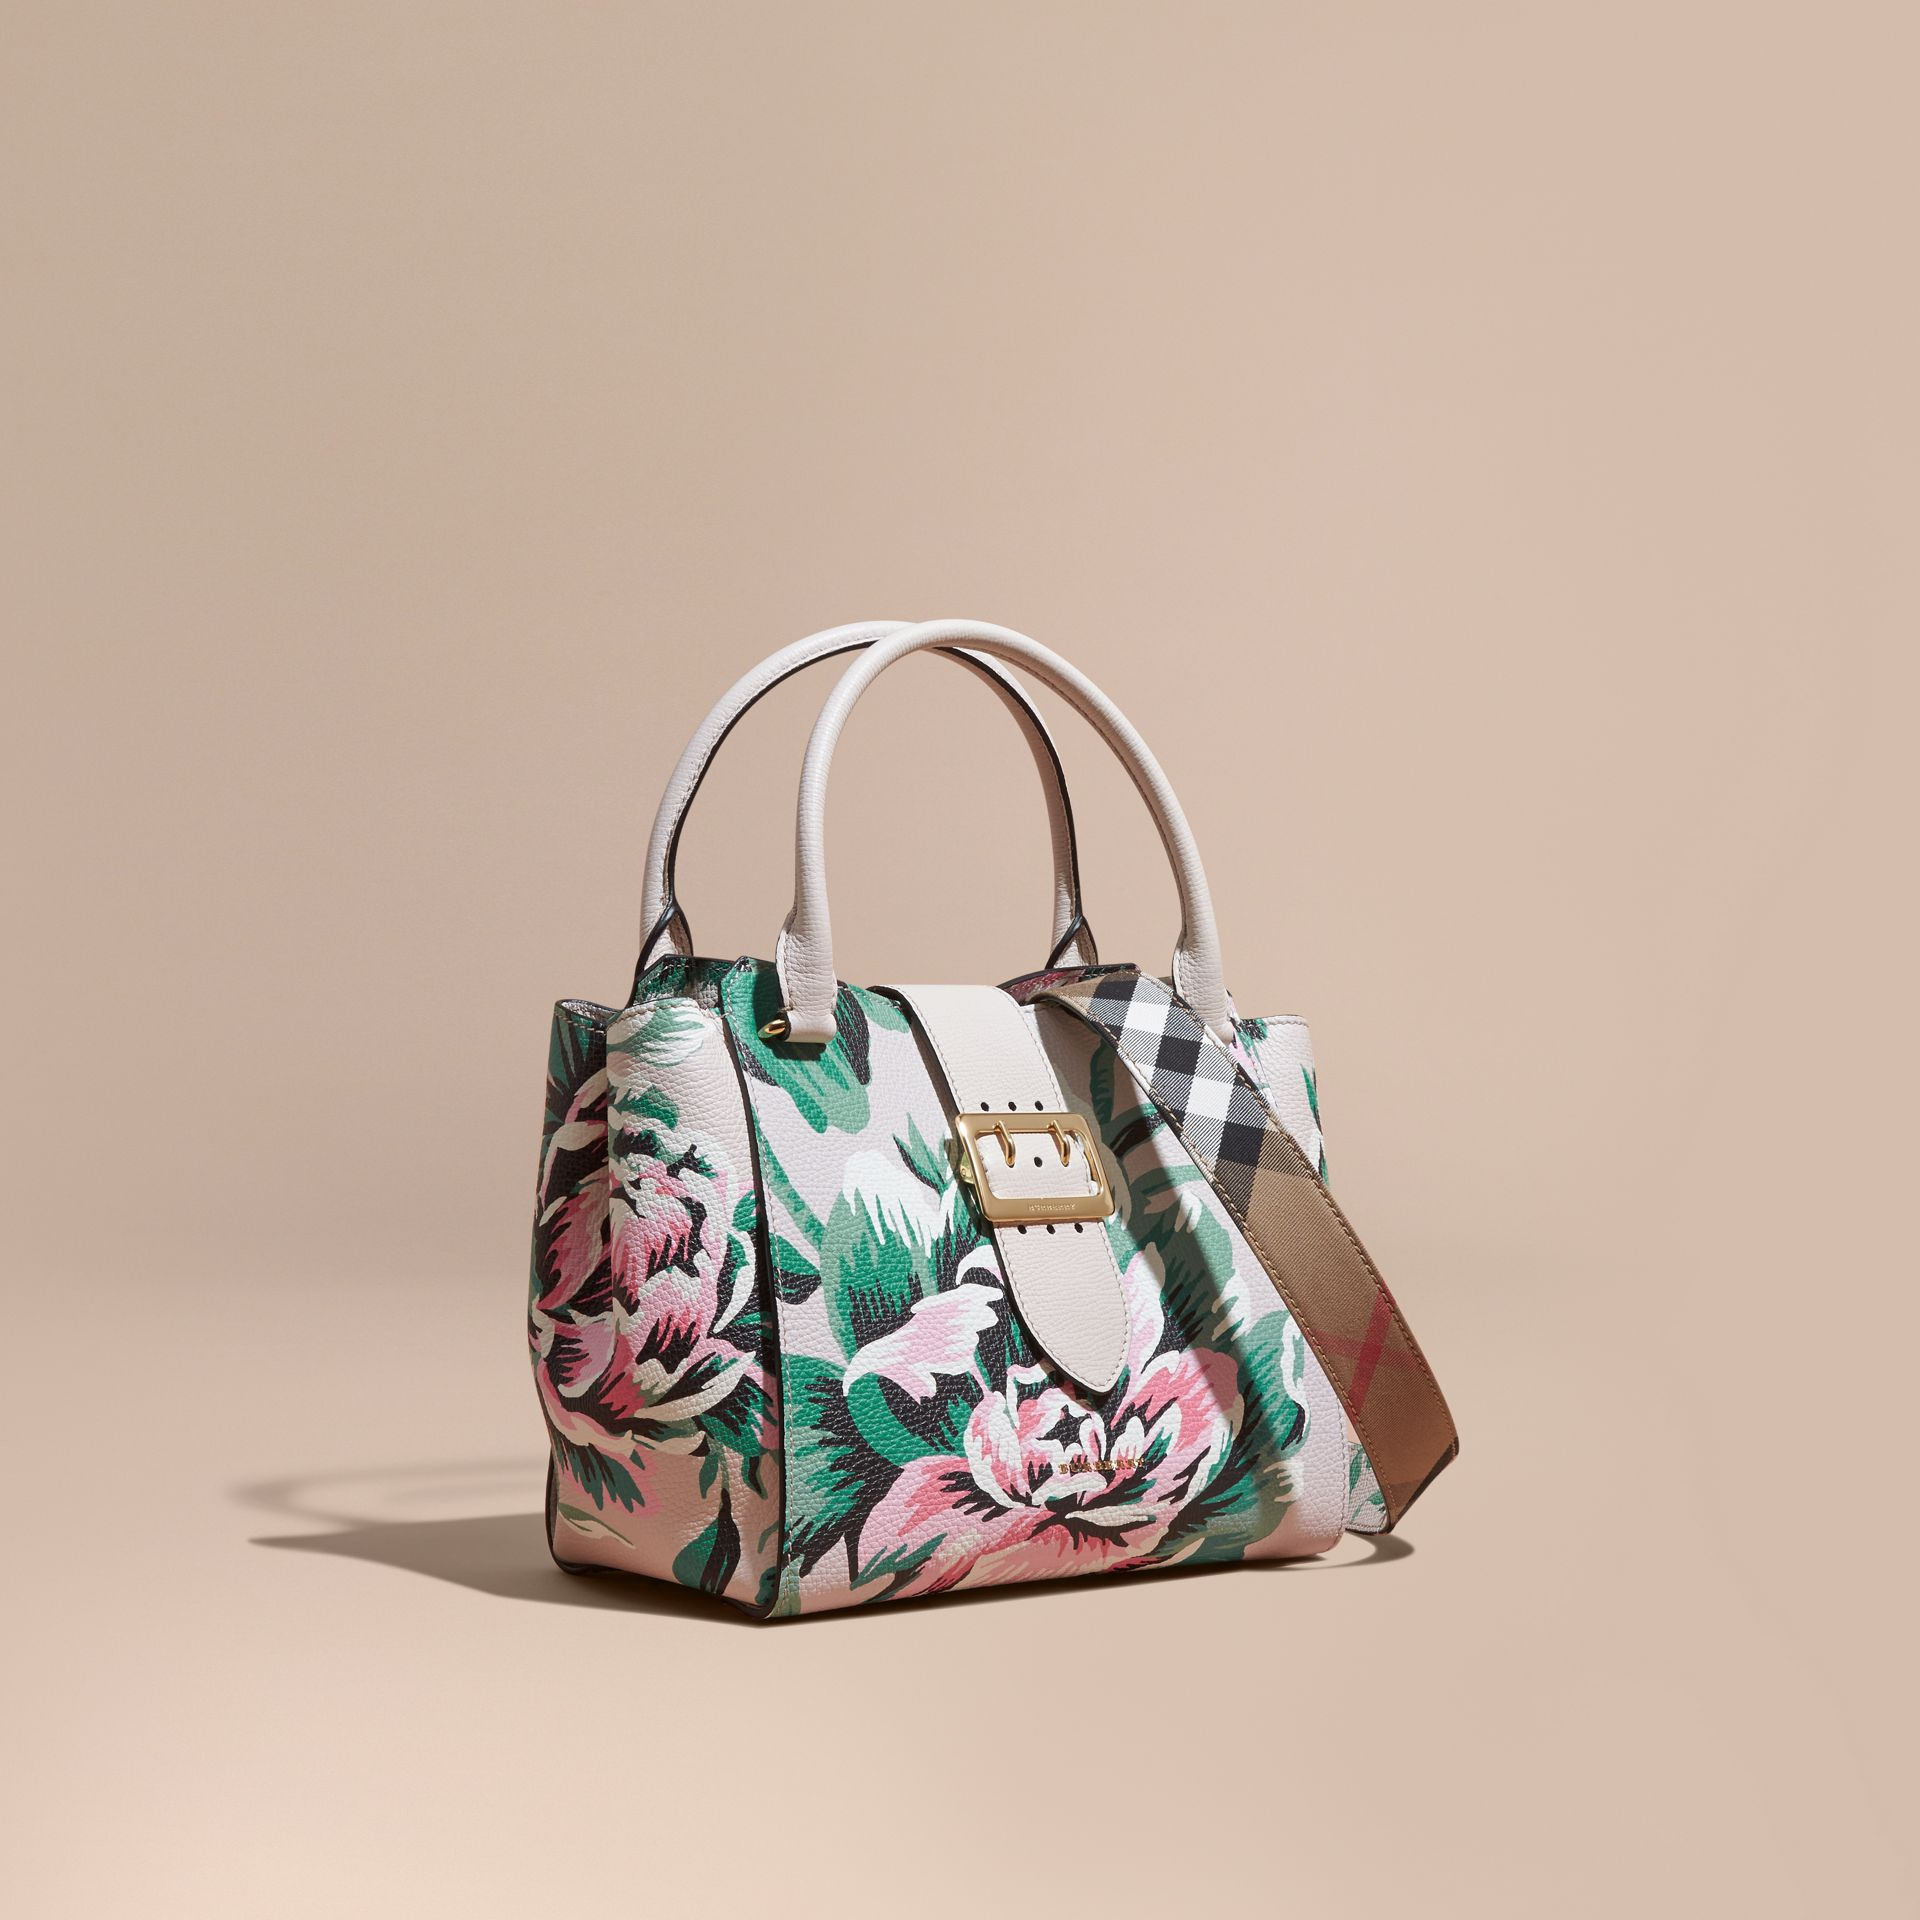 Natural/emerald green The Medium Buckle Tote in Peony Rose Print Leather Natural/emerald Green - gallery image 1